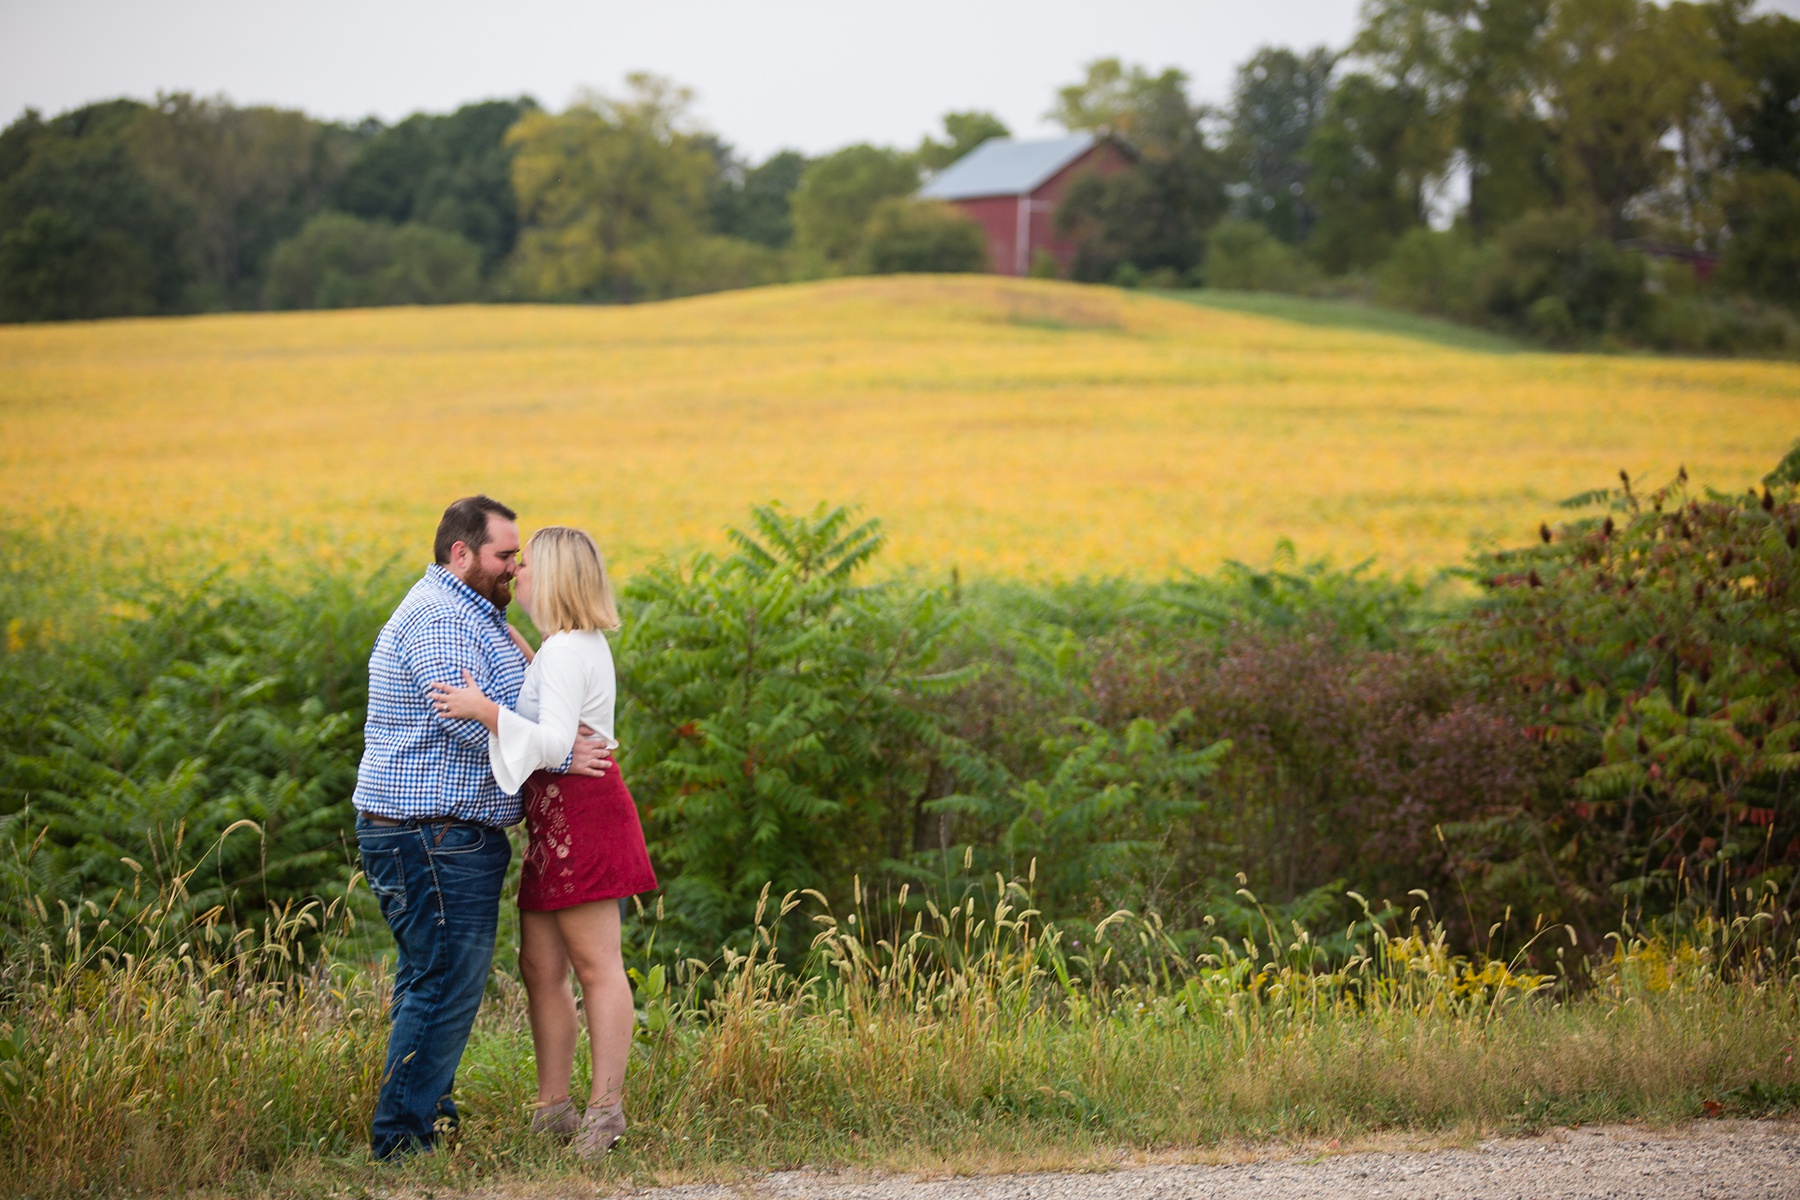 Brandon_Shafer_Photography_Megan_Nate_West_Michigan_Engagement_Photos_0016.jpg